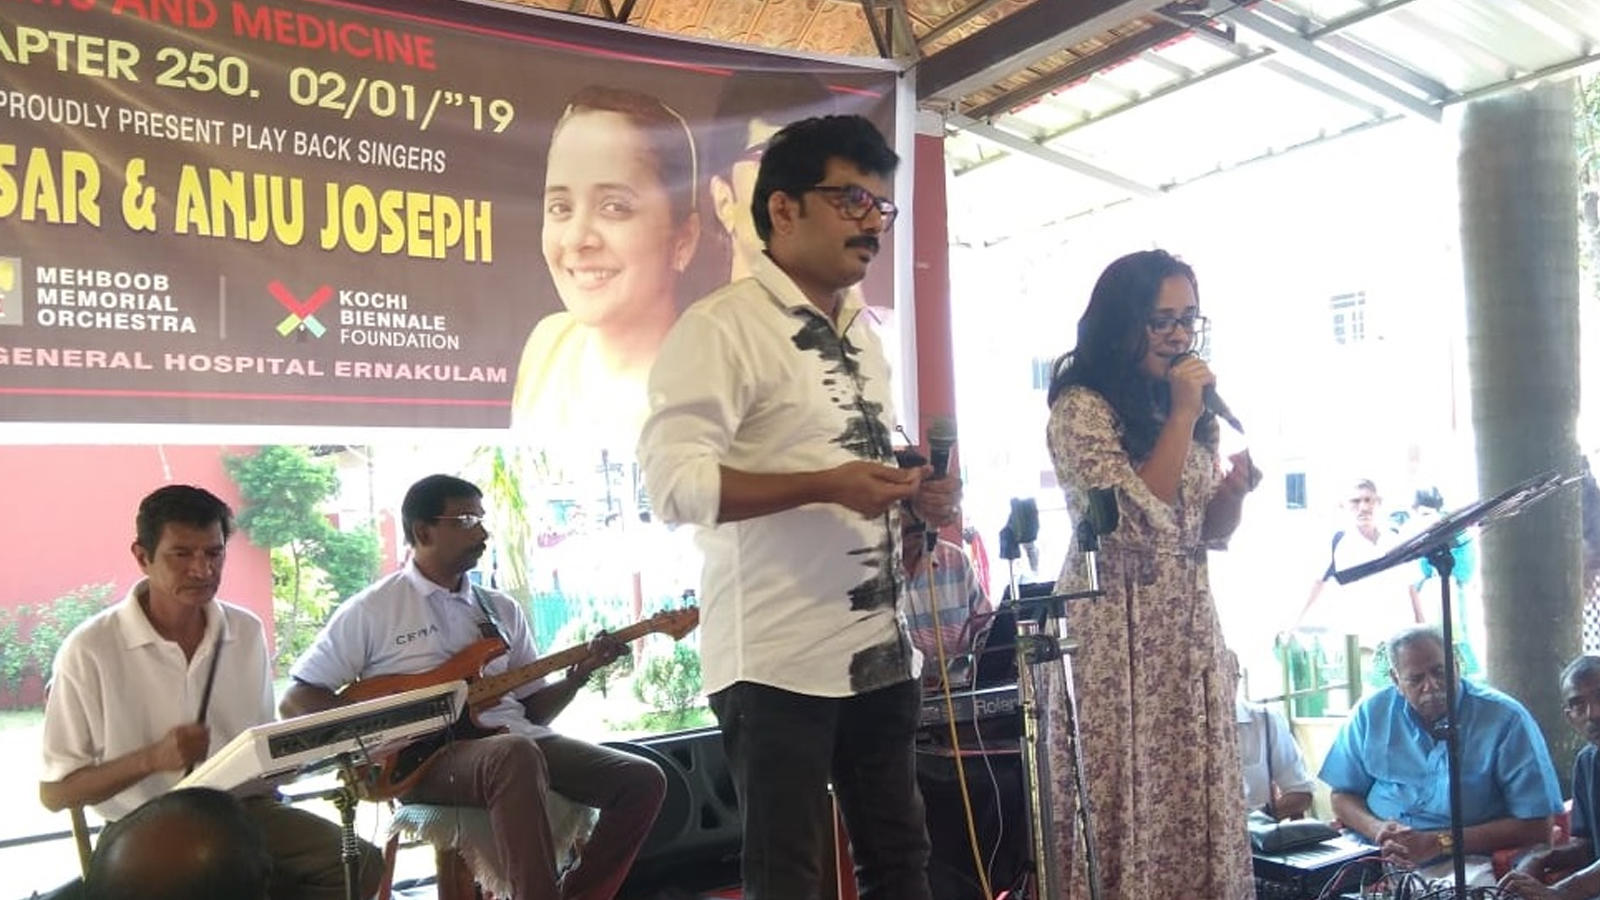 Singers Ansar and Anju Joseph at 'Arts and Medicine' show